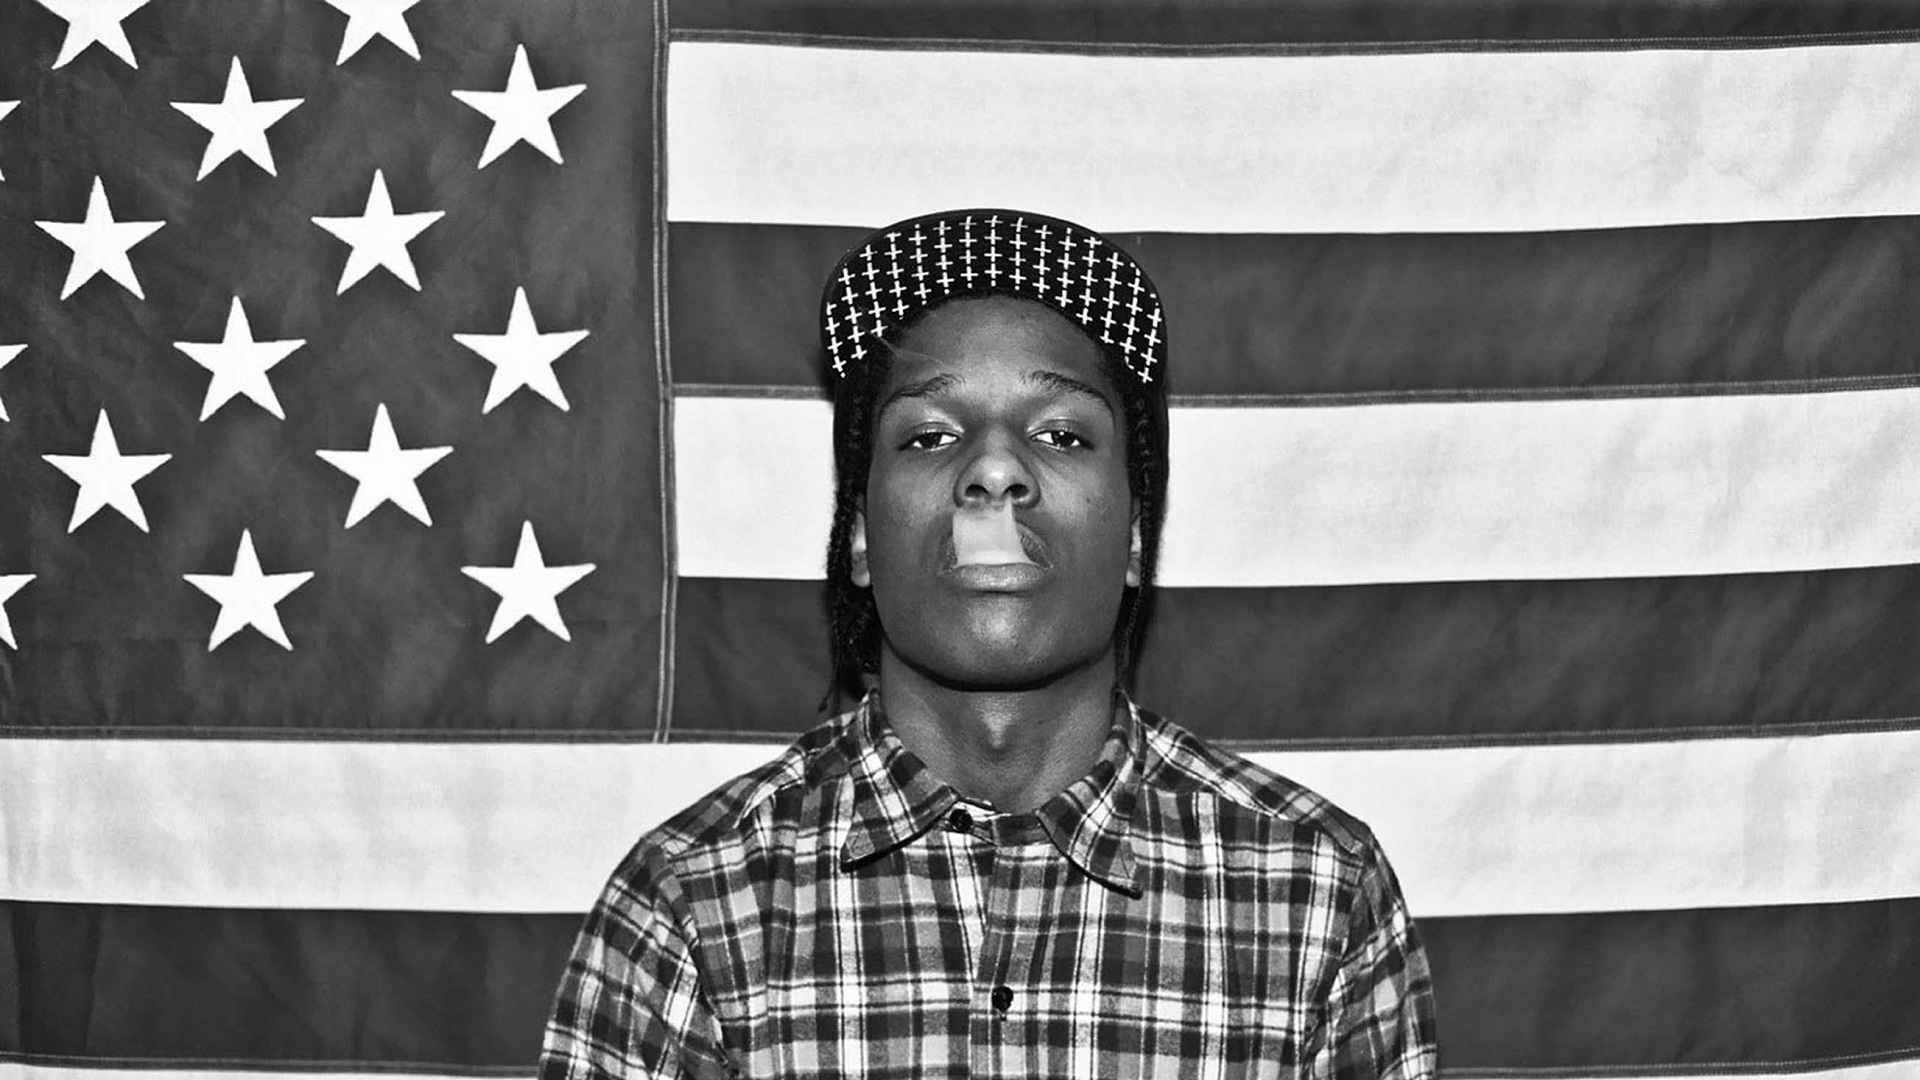 A$ap rocky background